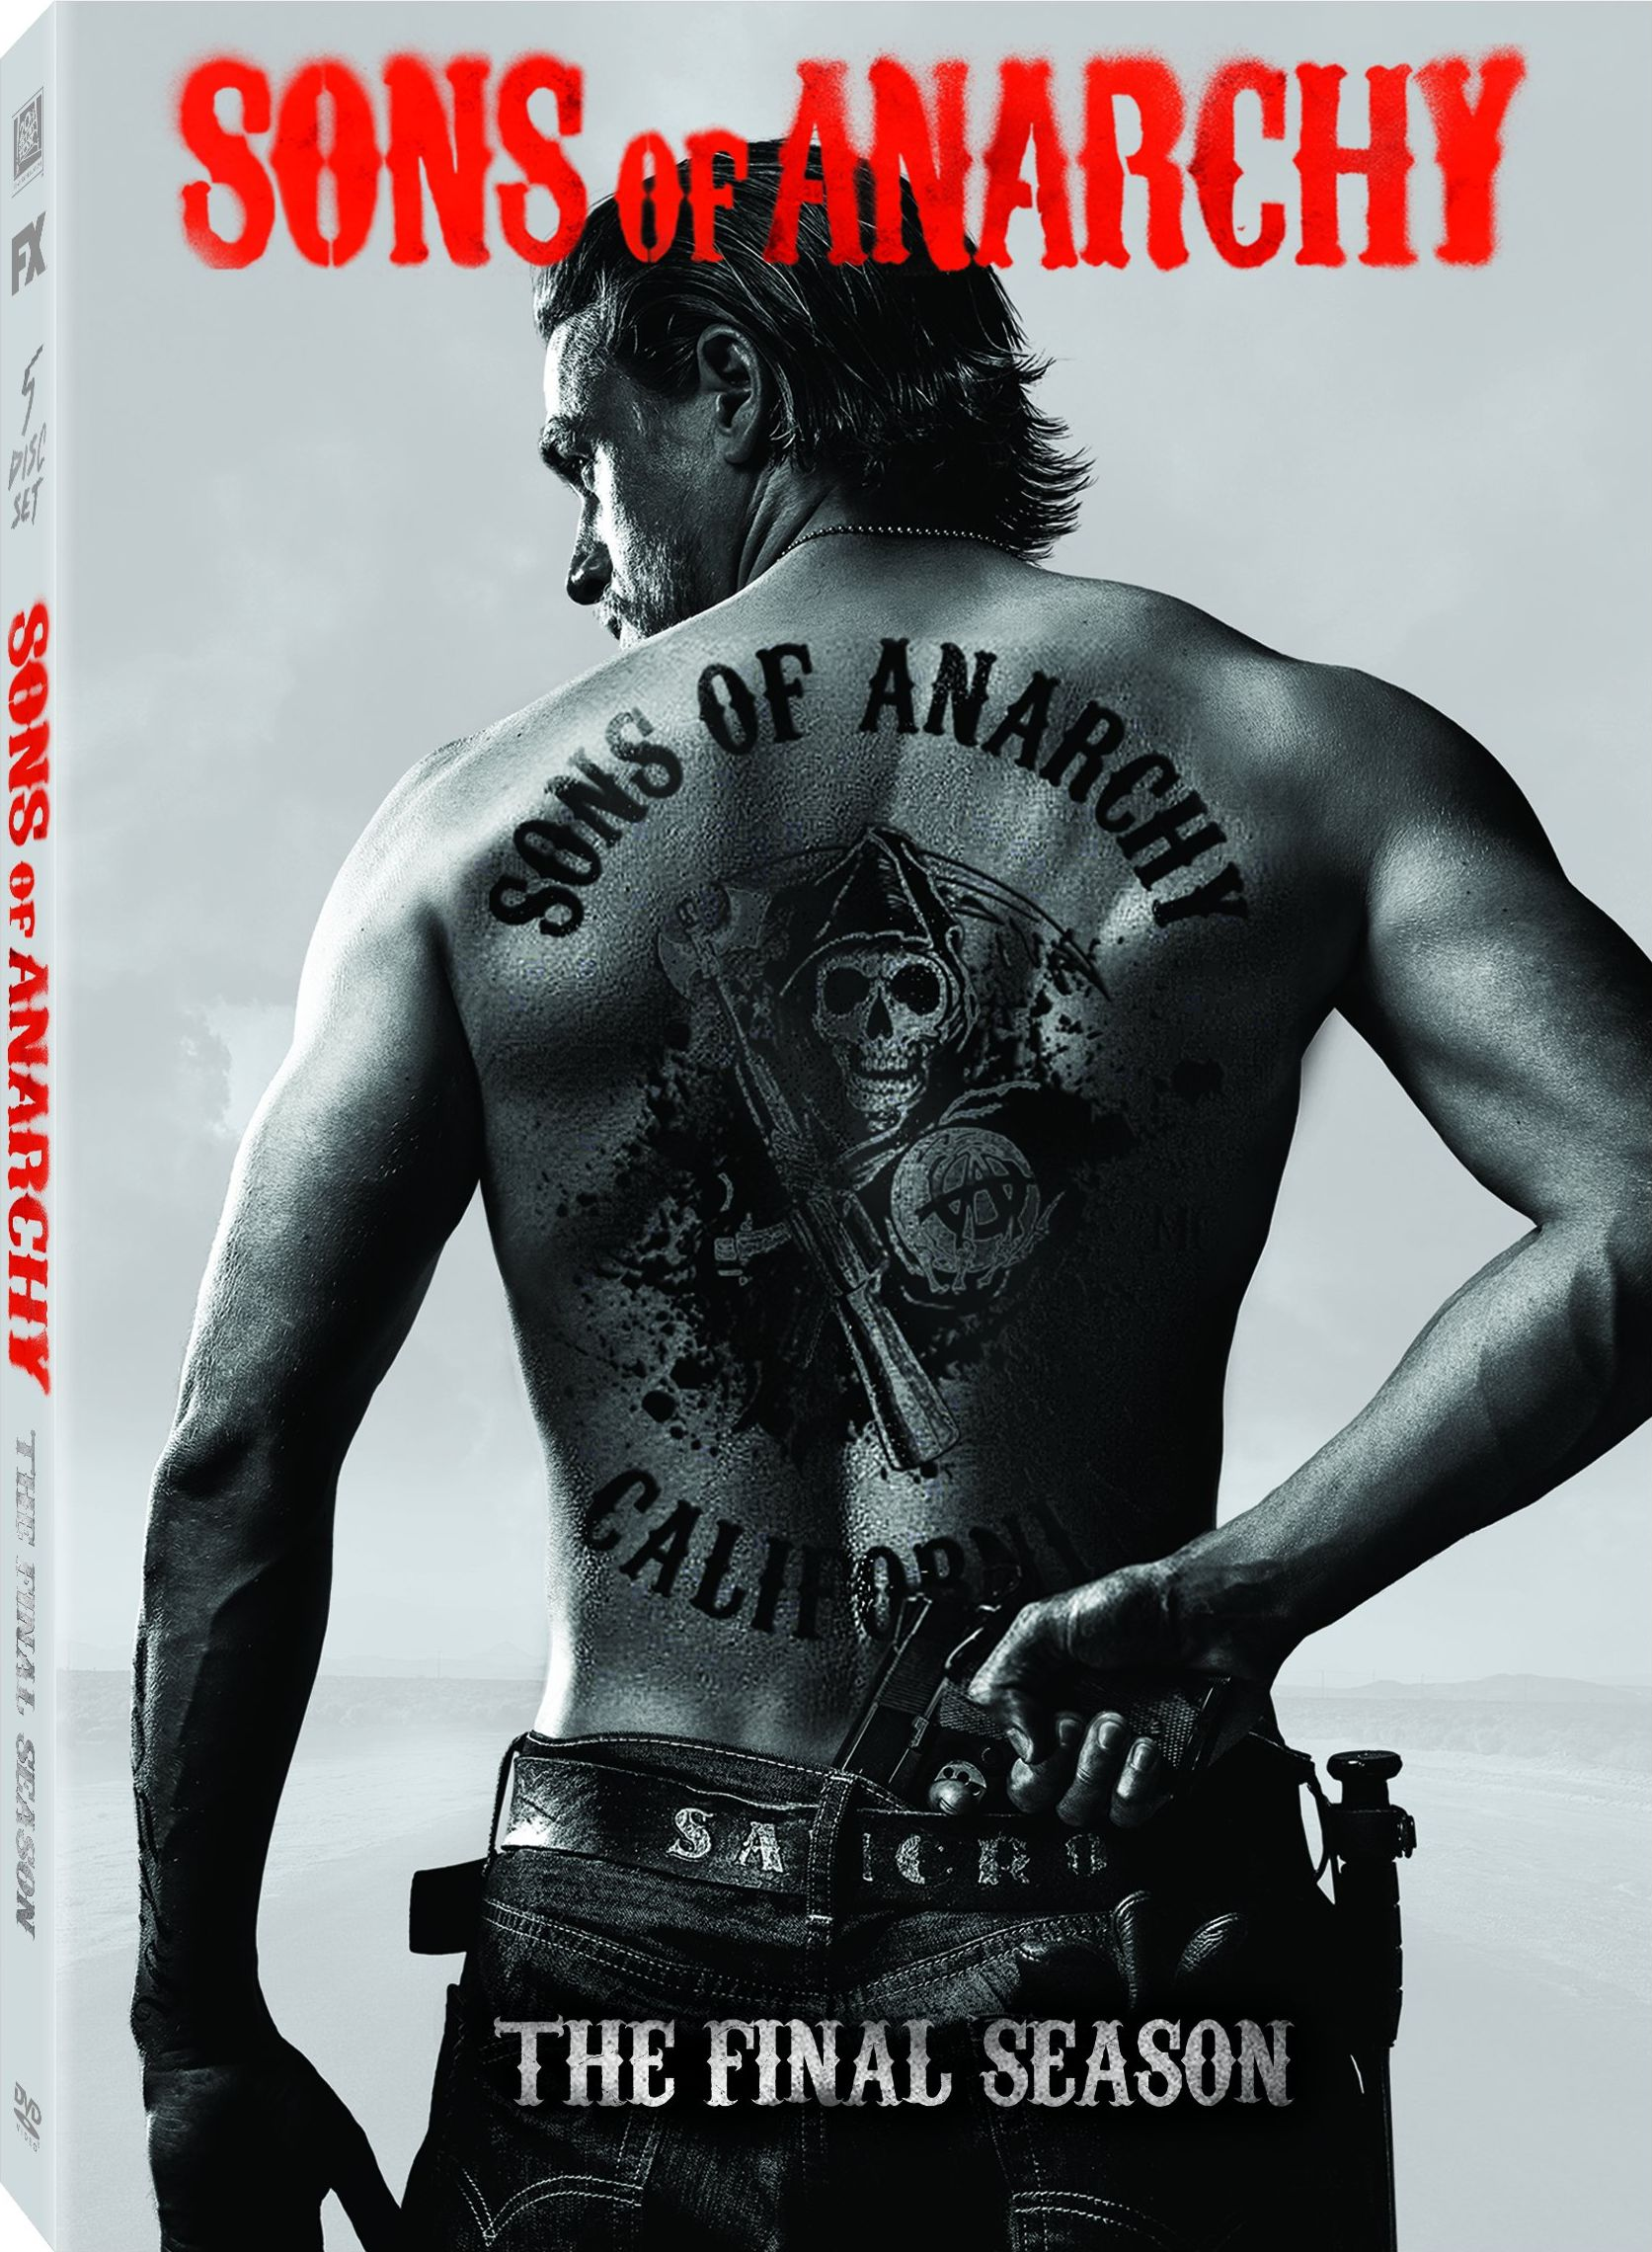 Sons of Anarchy Season 7 DVD Cover